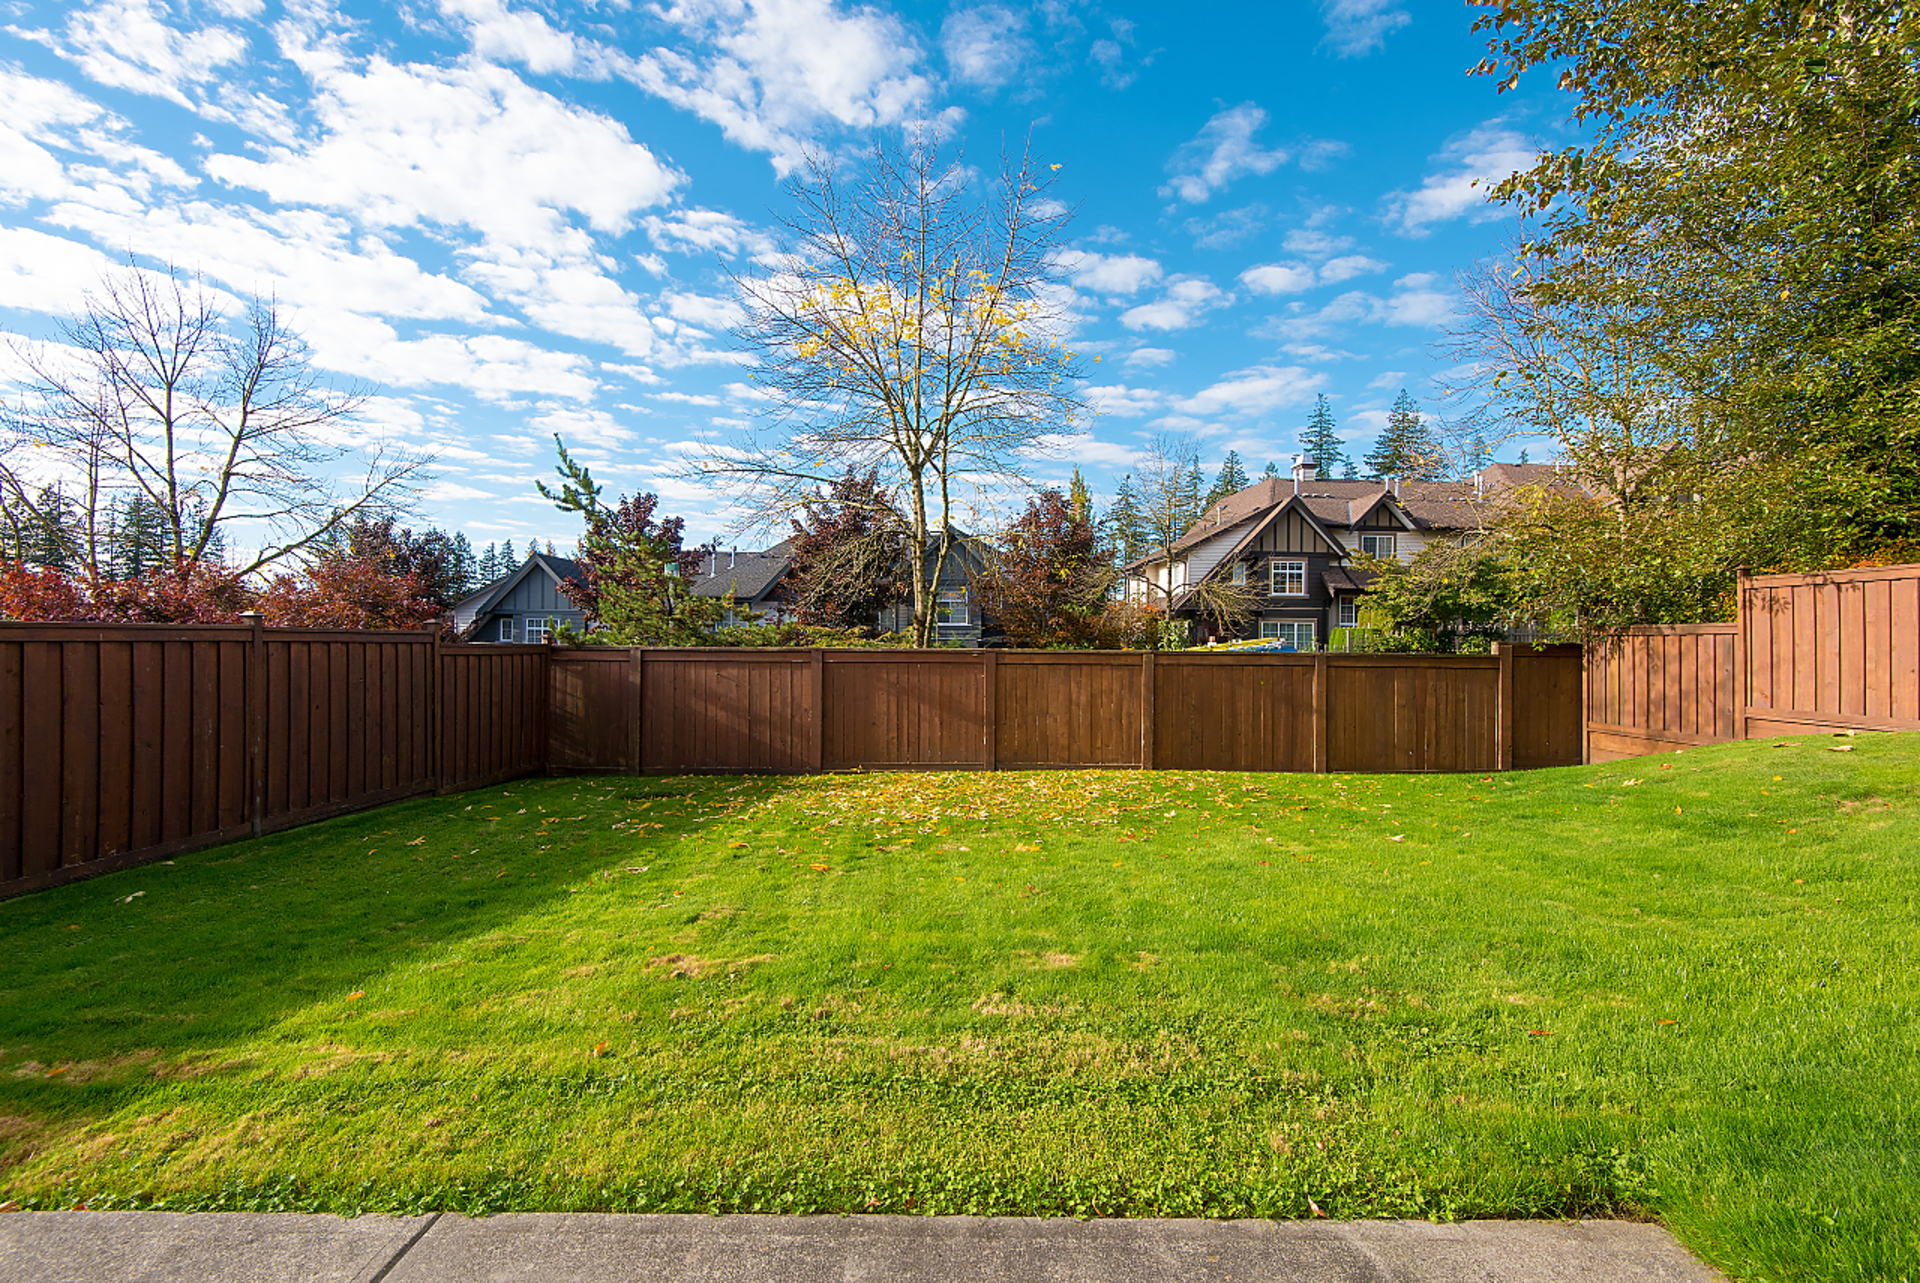 049 at 43 Maple Drive, Heritage Woods PM, Port Moody